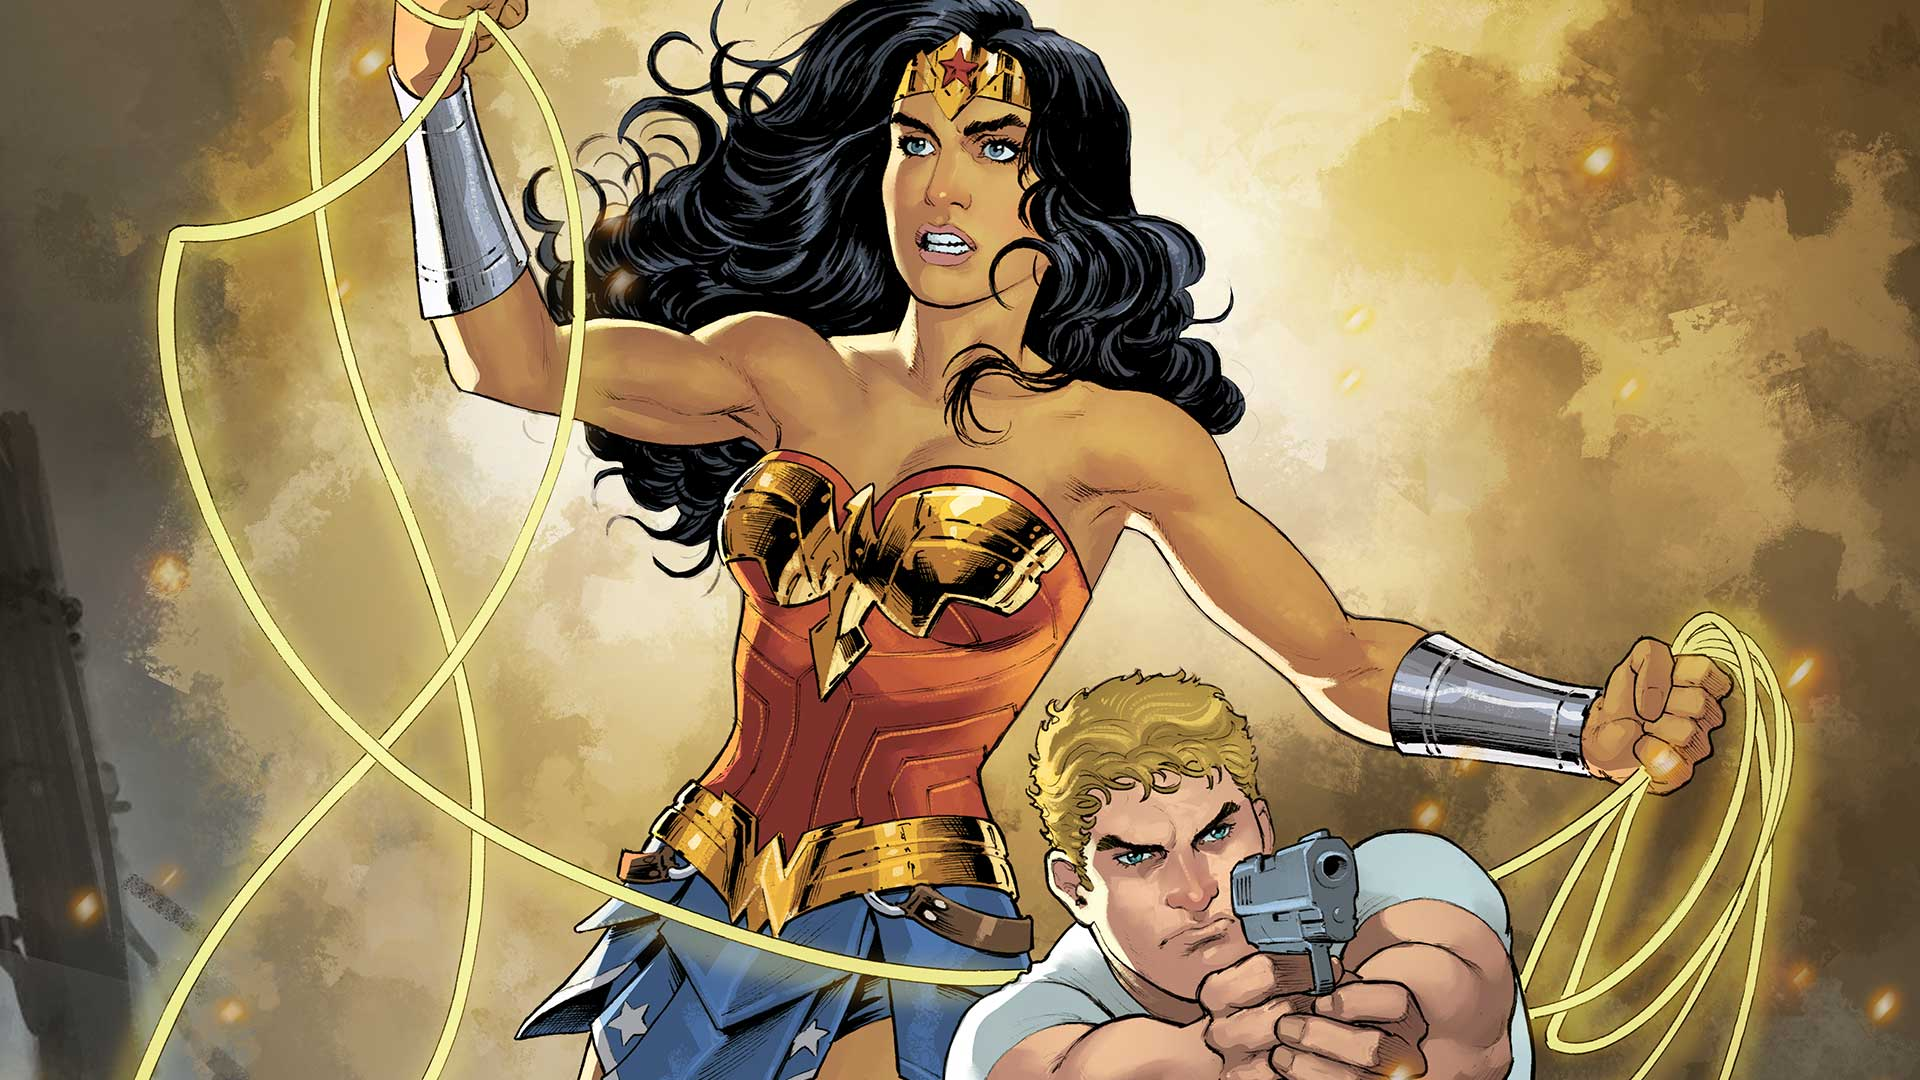 13 Characters We Want to See in Wonder Woman 2 - IGN